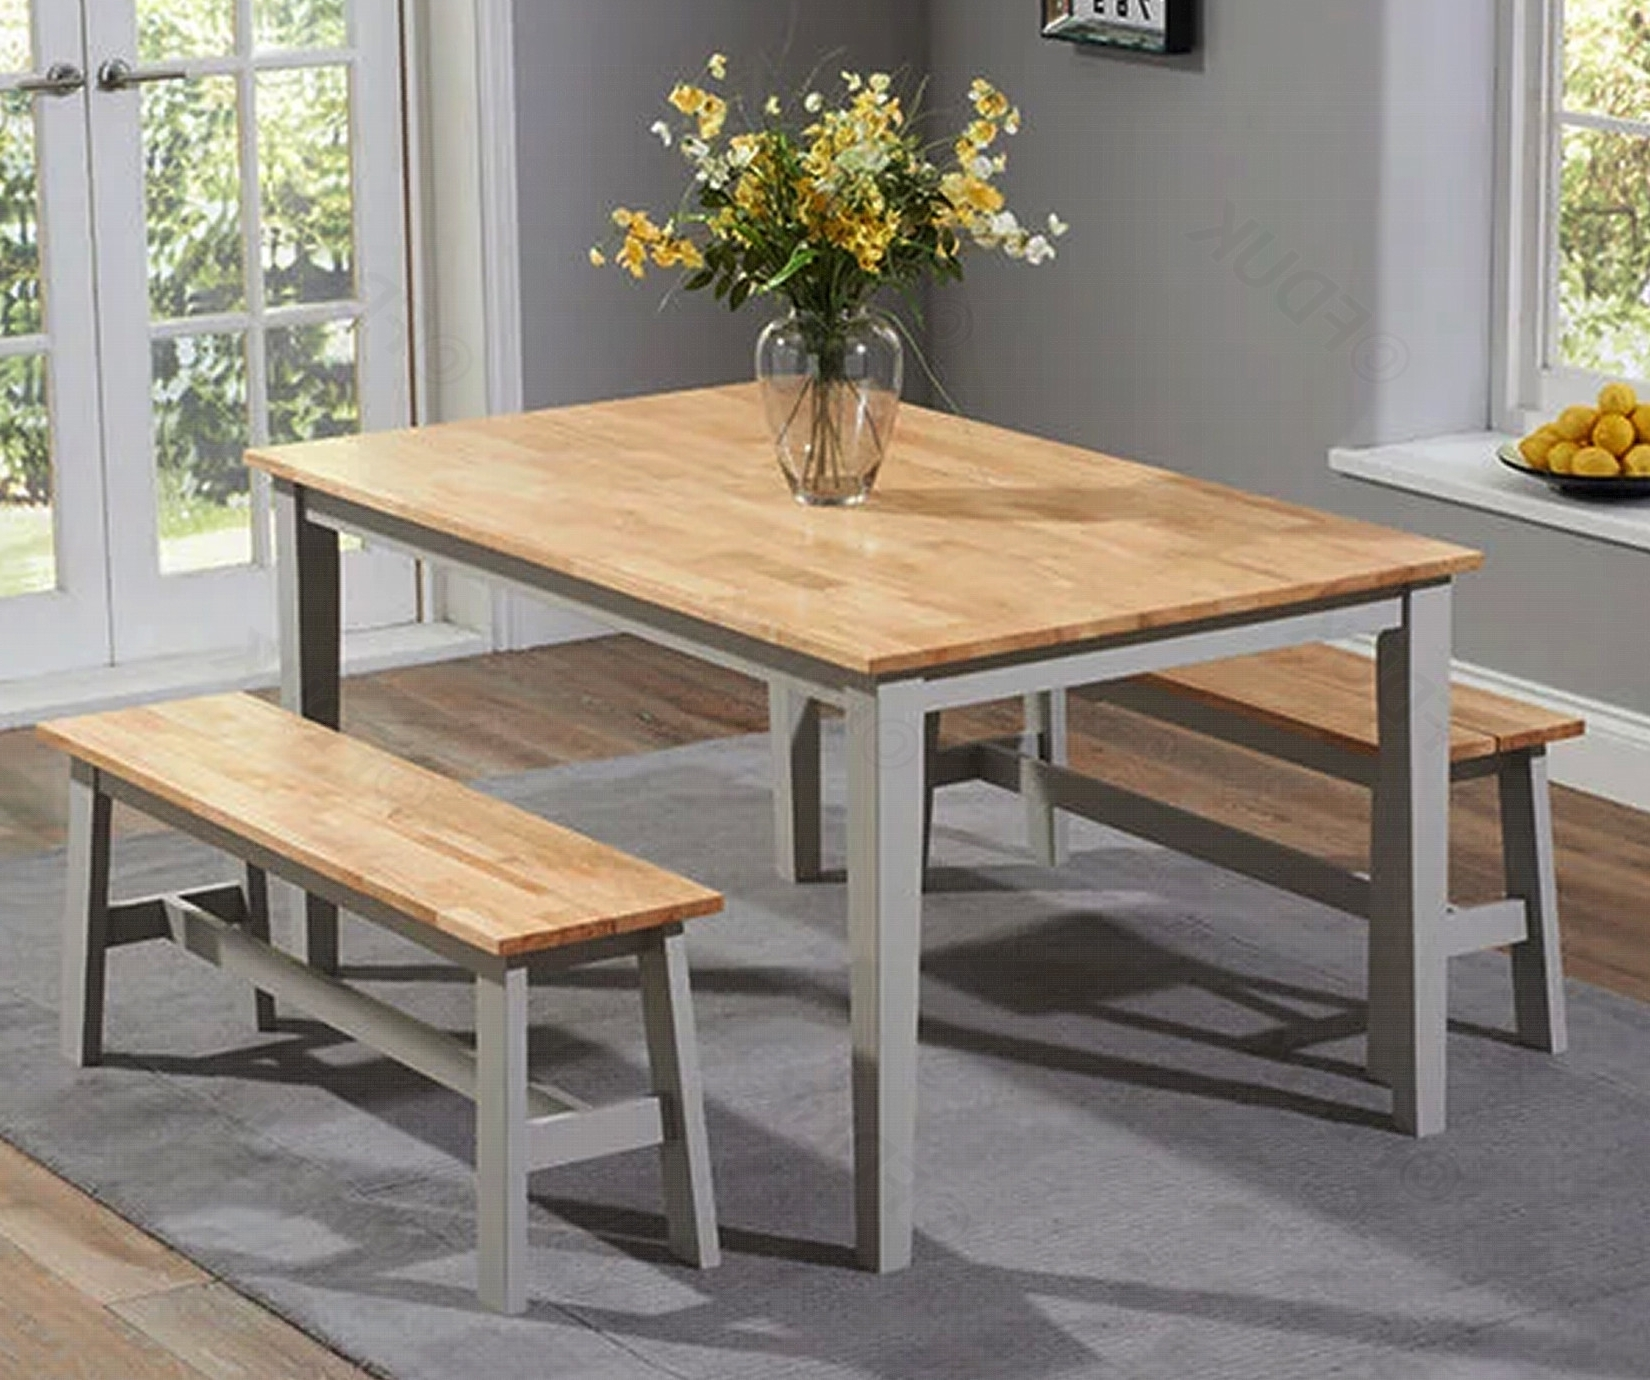 2018 Chichester Dining Tables Regarding Mark Harris Chichester (Gallery 22 of 25)